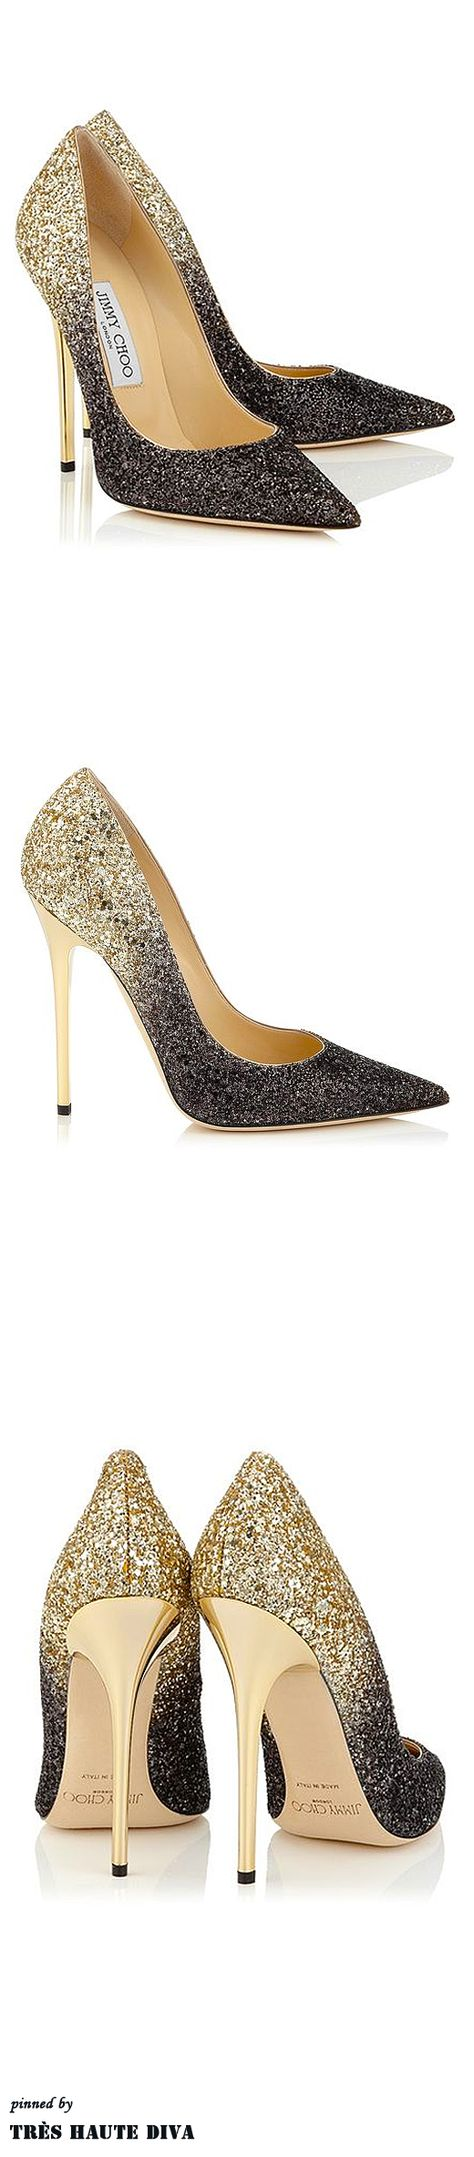 Jimmy Choo 'Anouk' - Black and Nude Coarse Degrade Glitter Pointy Toe Pumps